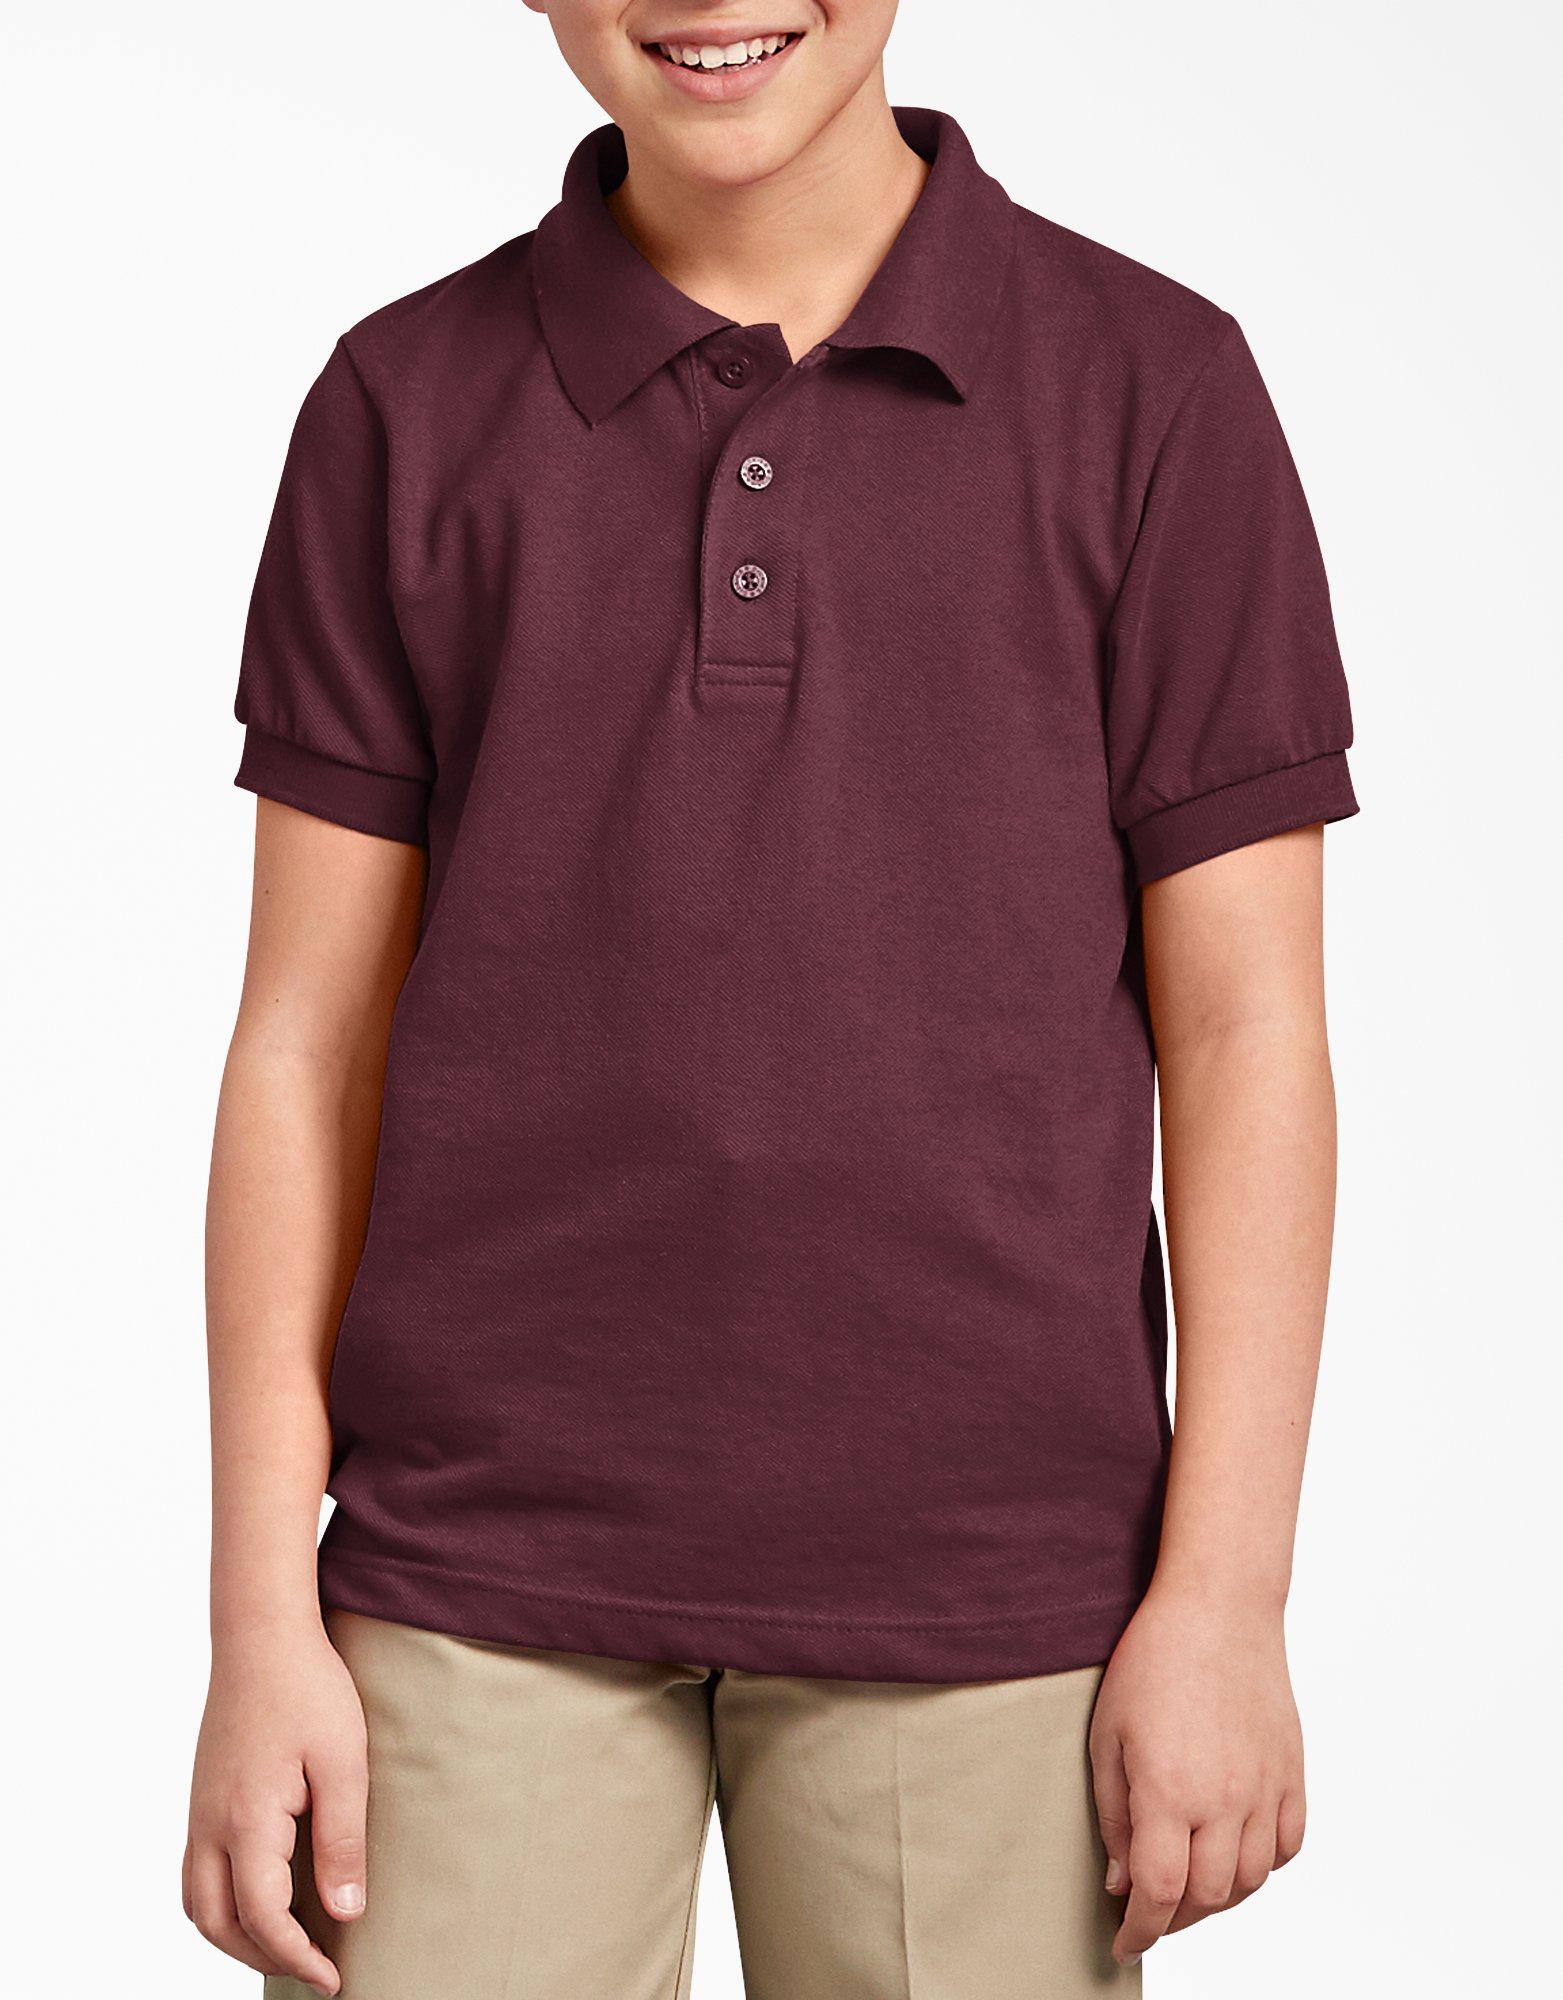 Kids' Short Sleeve Pique Polo Shirt, 8-20 - Burgundy (BY)